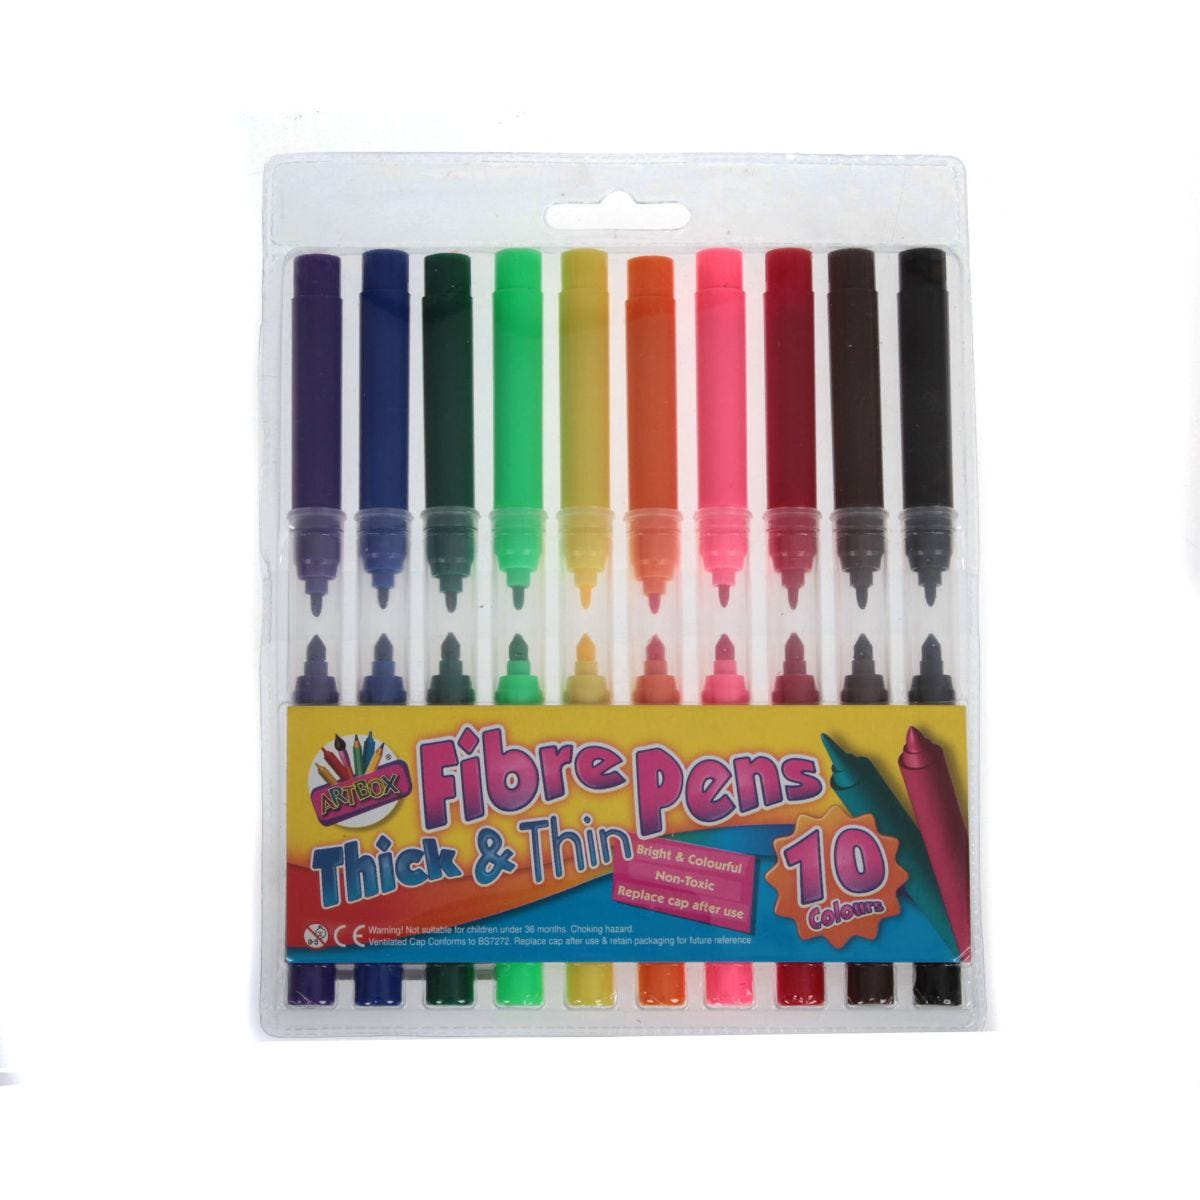 Image of 10 Thick and Thin Fibre Pens